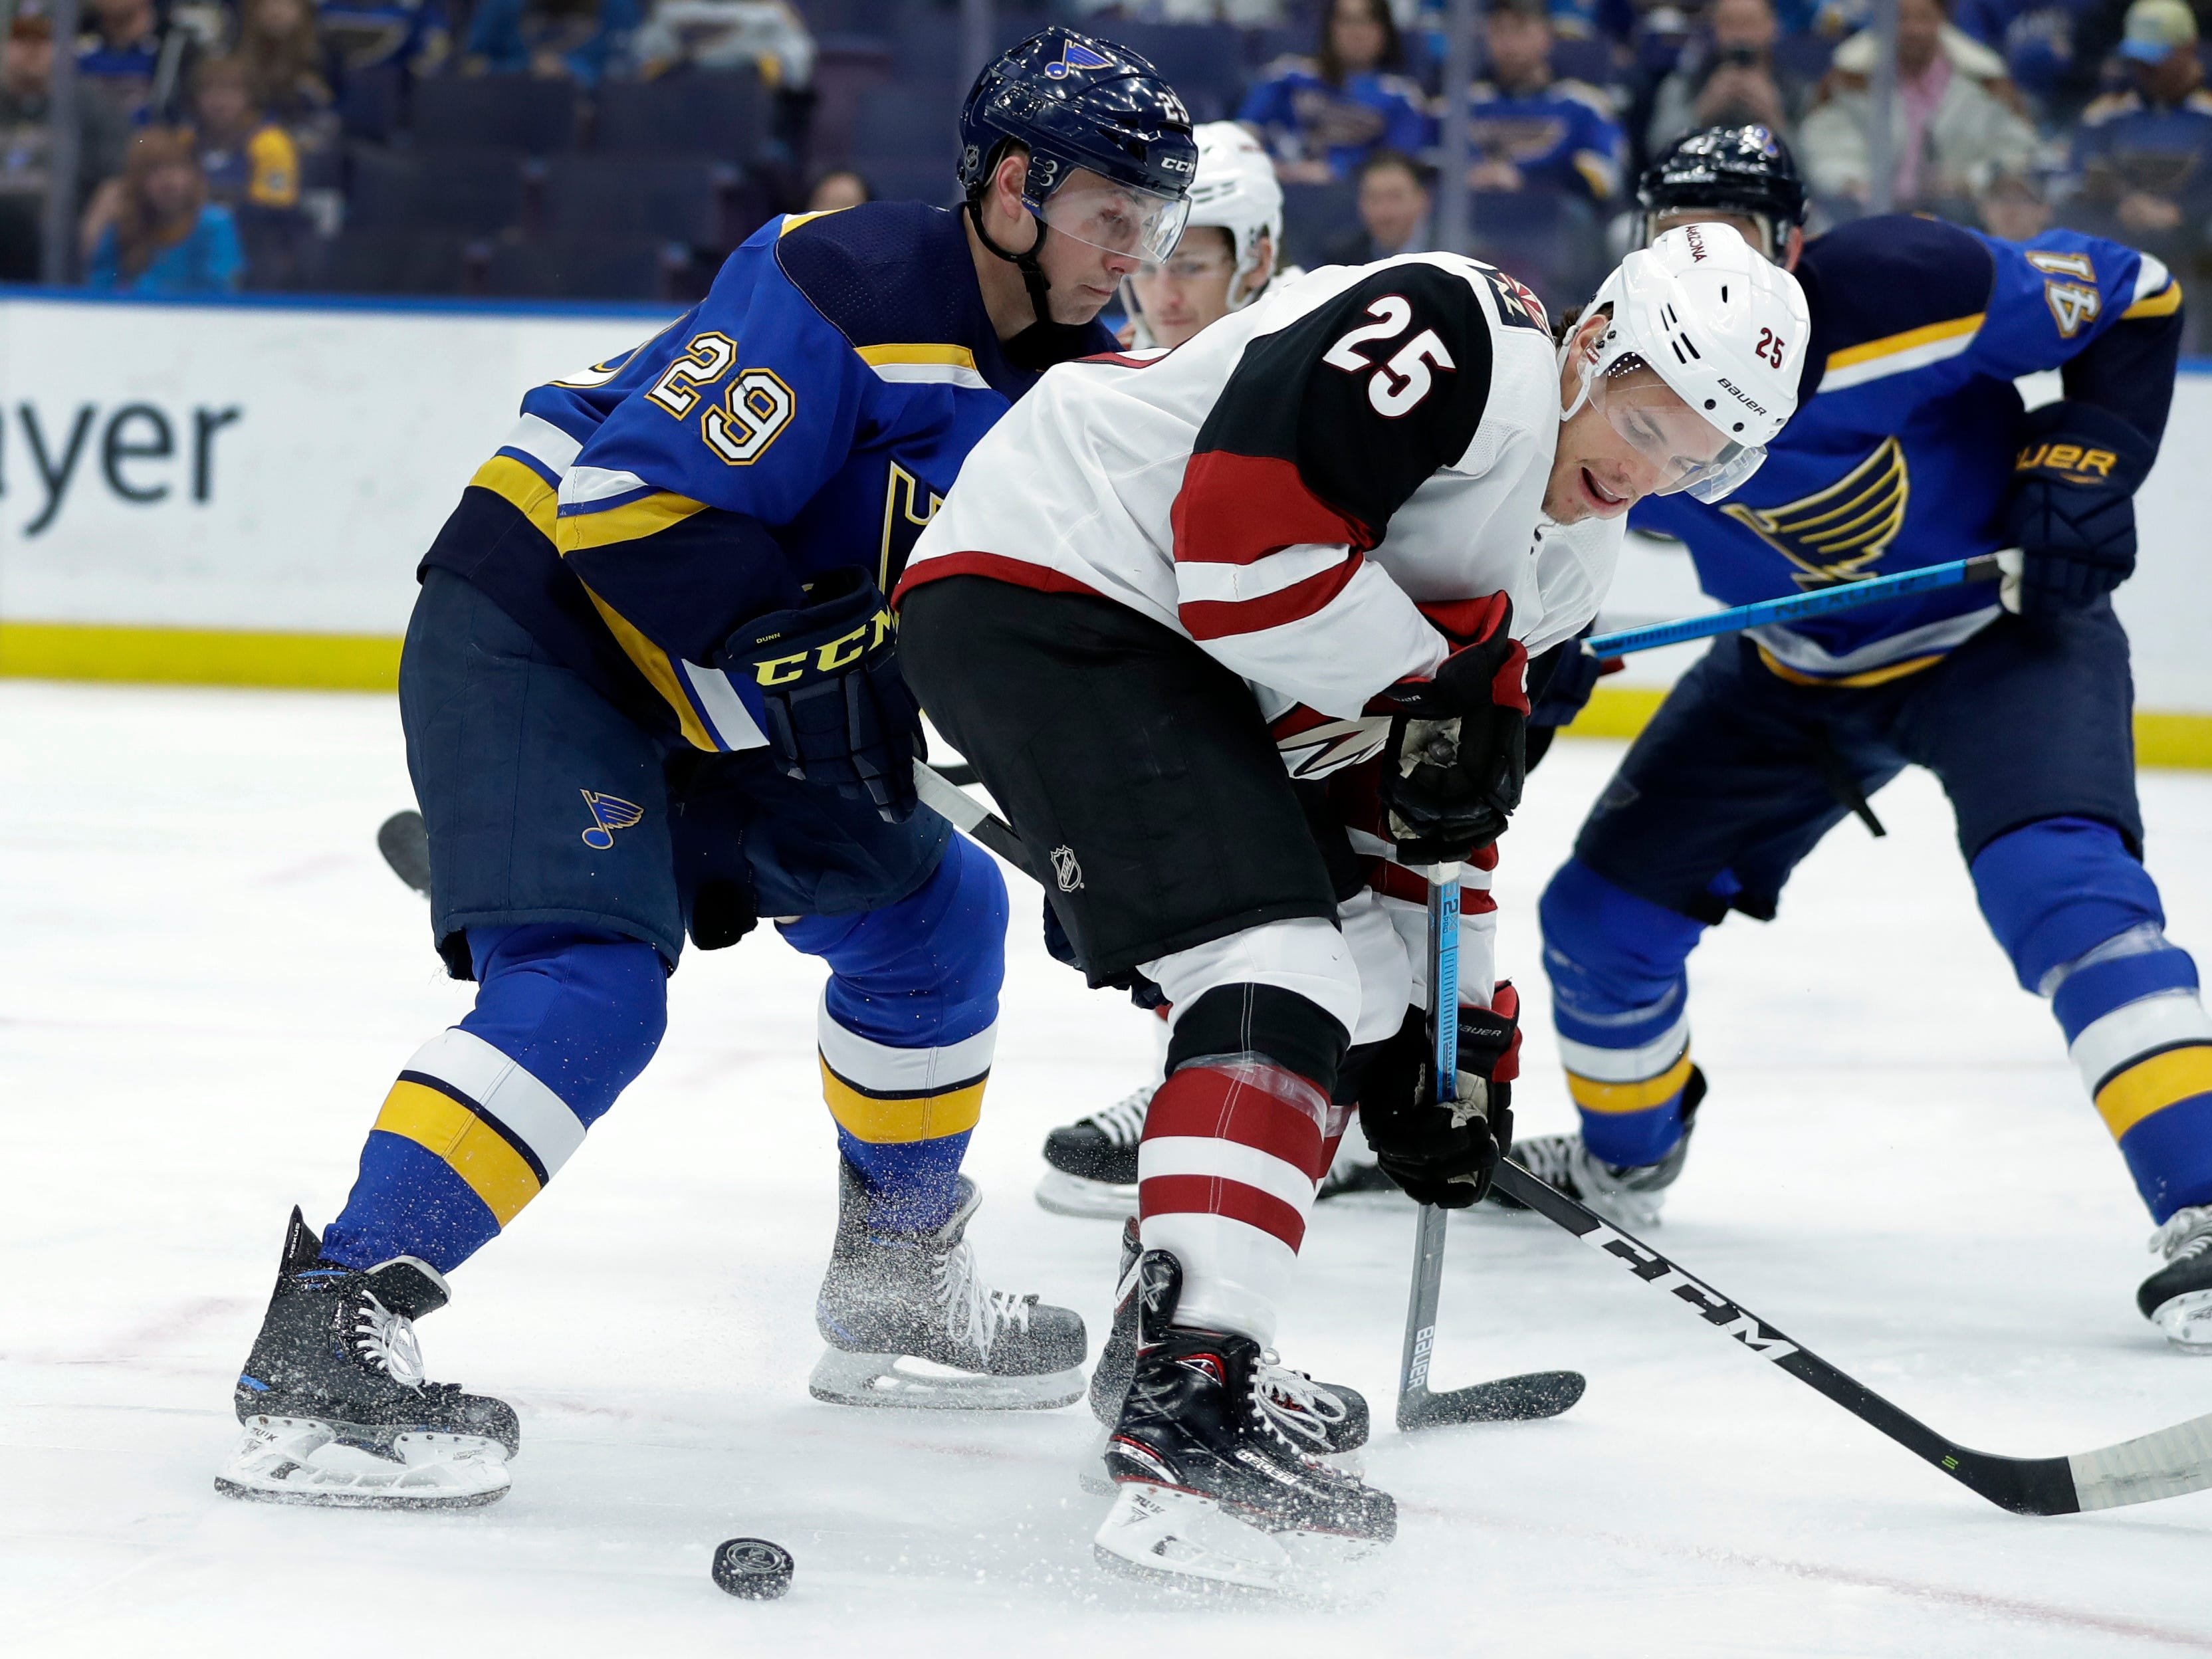 Arizona Coyotes' Nick Cousins (25) and St. Louis Blues' Vince Dunn (29) skate past the puck during the first period of an NHL hockey game, Tuesday, March 12, 2019, in St. Louis.